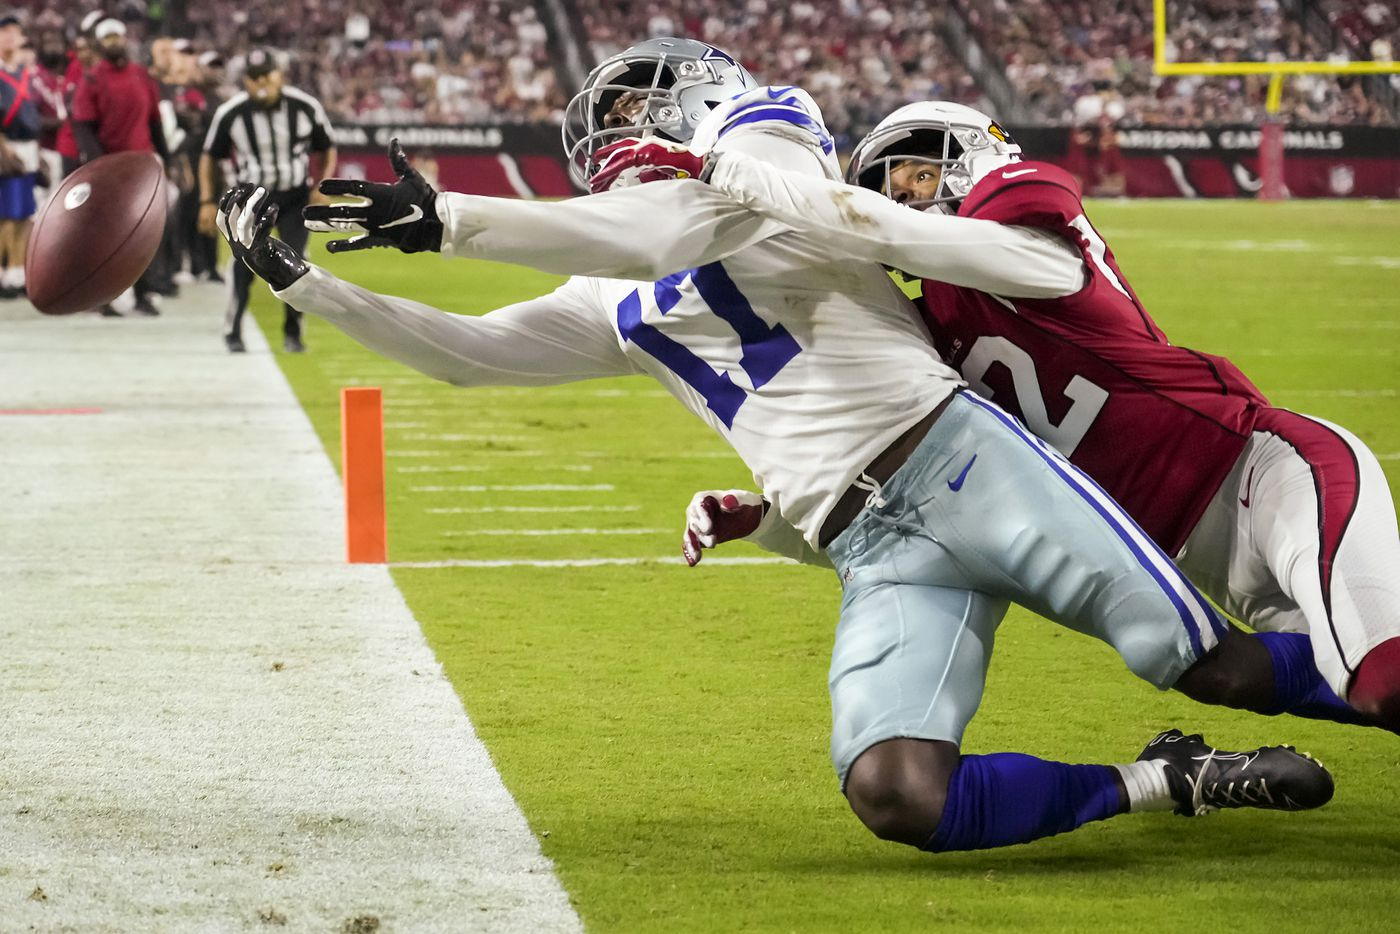 Dallas Cowboys wide receiver Malik Turner (17) can't catch a pass in the end zone as Arizona Cardinals cornerback Tay Gowan (32) defends during the second half of a preseason NFL football game at State Farm Stadium on Friday, Aug. 13, 2021, in Glendale, Ariz.